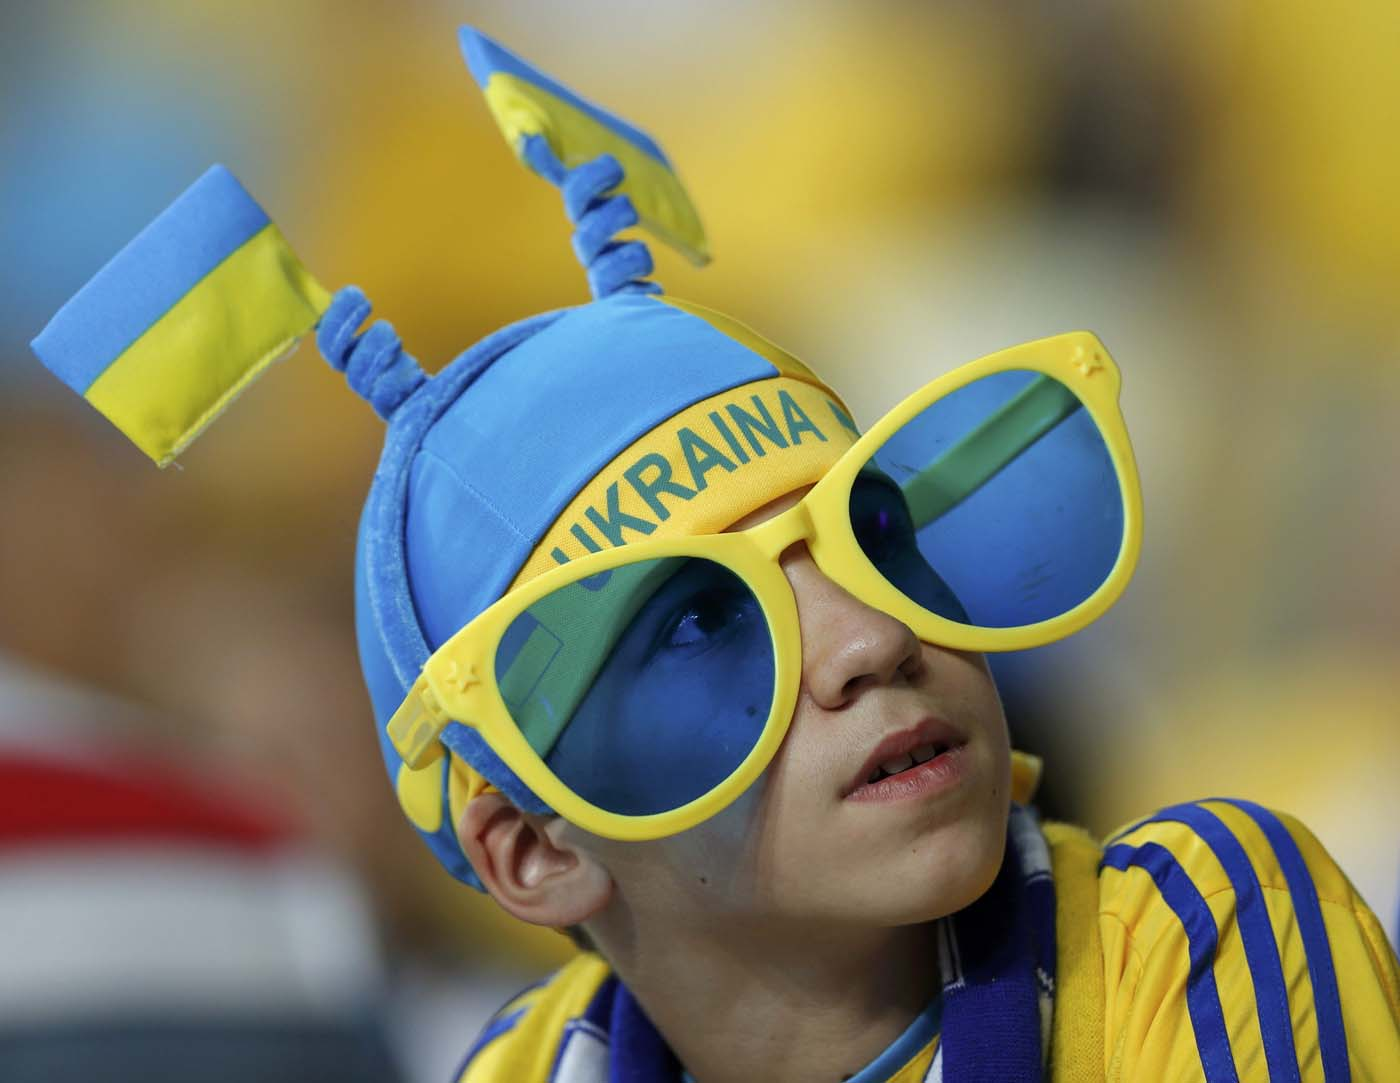 A Sweden's soccer fan cheers before the start of their Group D Euro 2012 soccer match against Ukraine at the Olympic stadium in Kiev, June 11, 2012. (Darren Staples/Reuters)